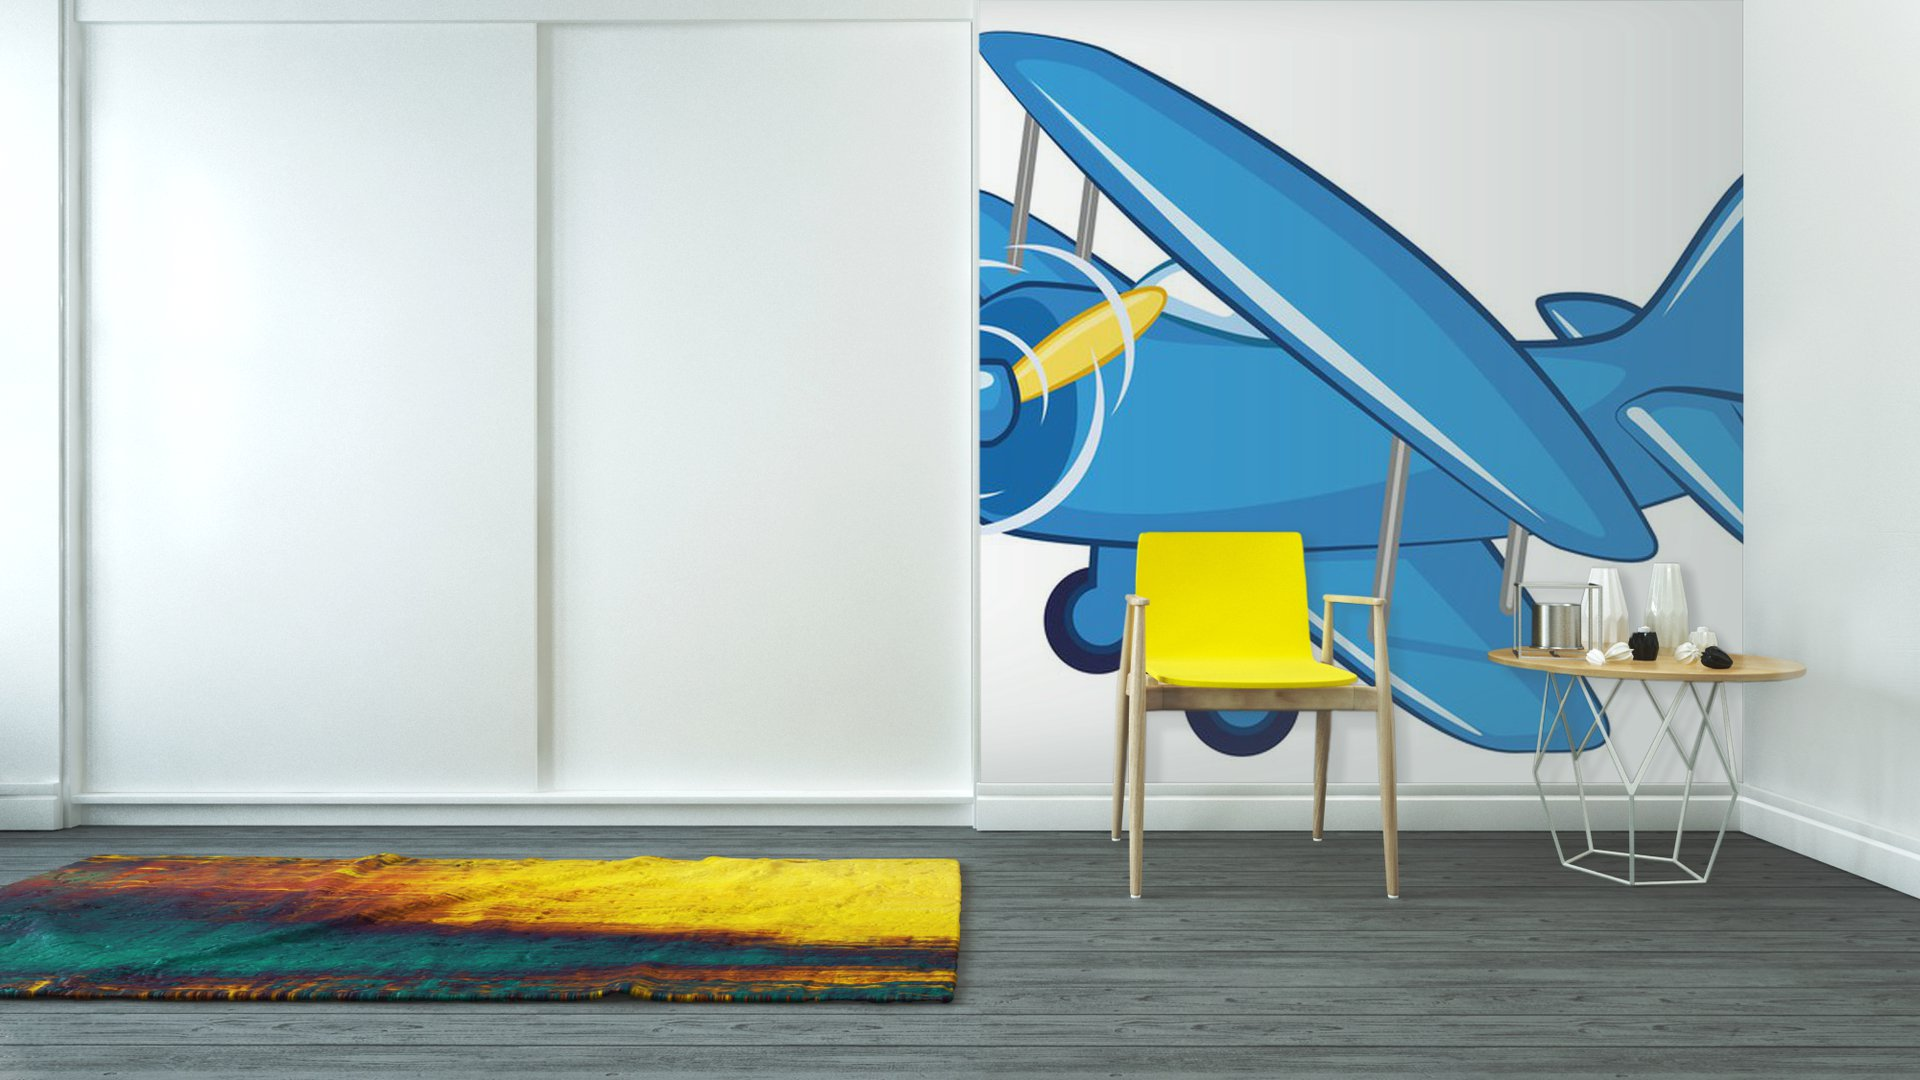 Vinyl wall mural blue airplane pixersize com for Aeroplane wall mural